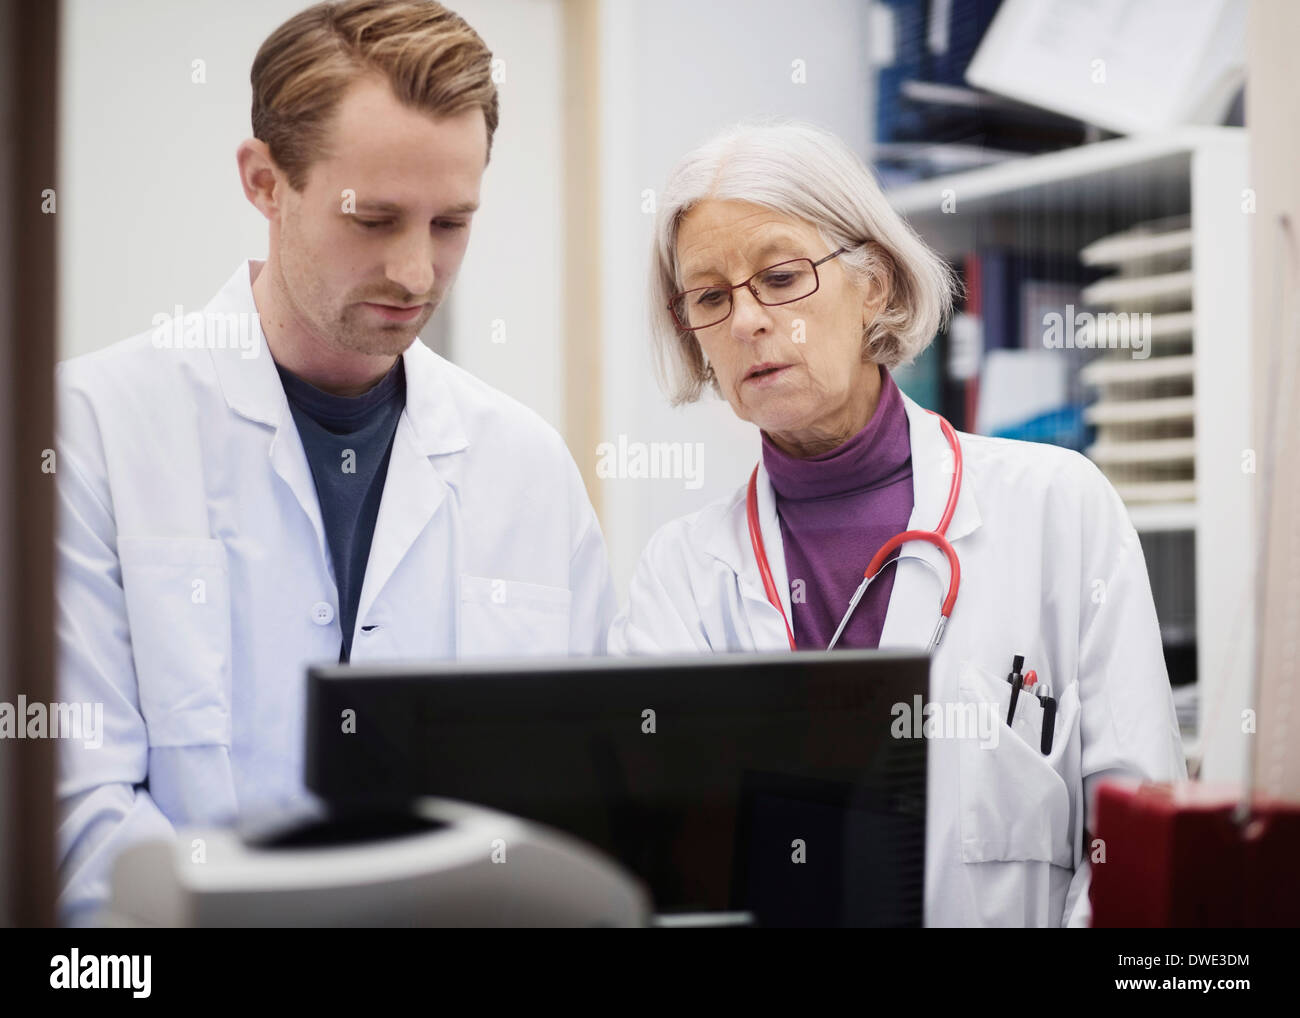 Senior female doctor with male colleague using computer in examination room - Stock Image